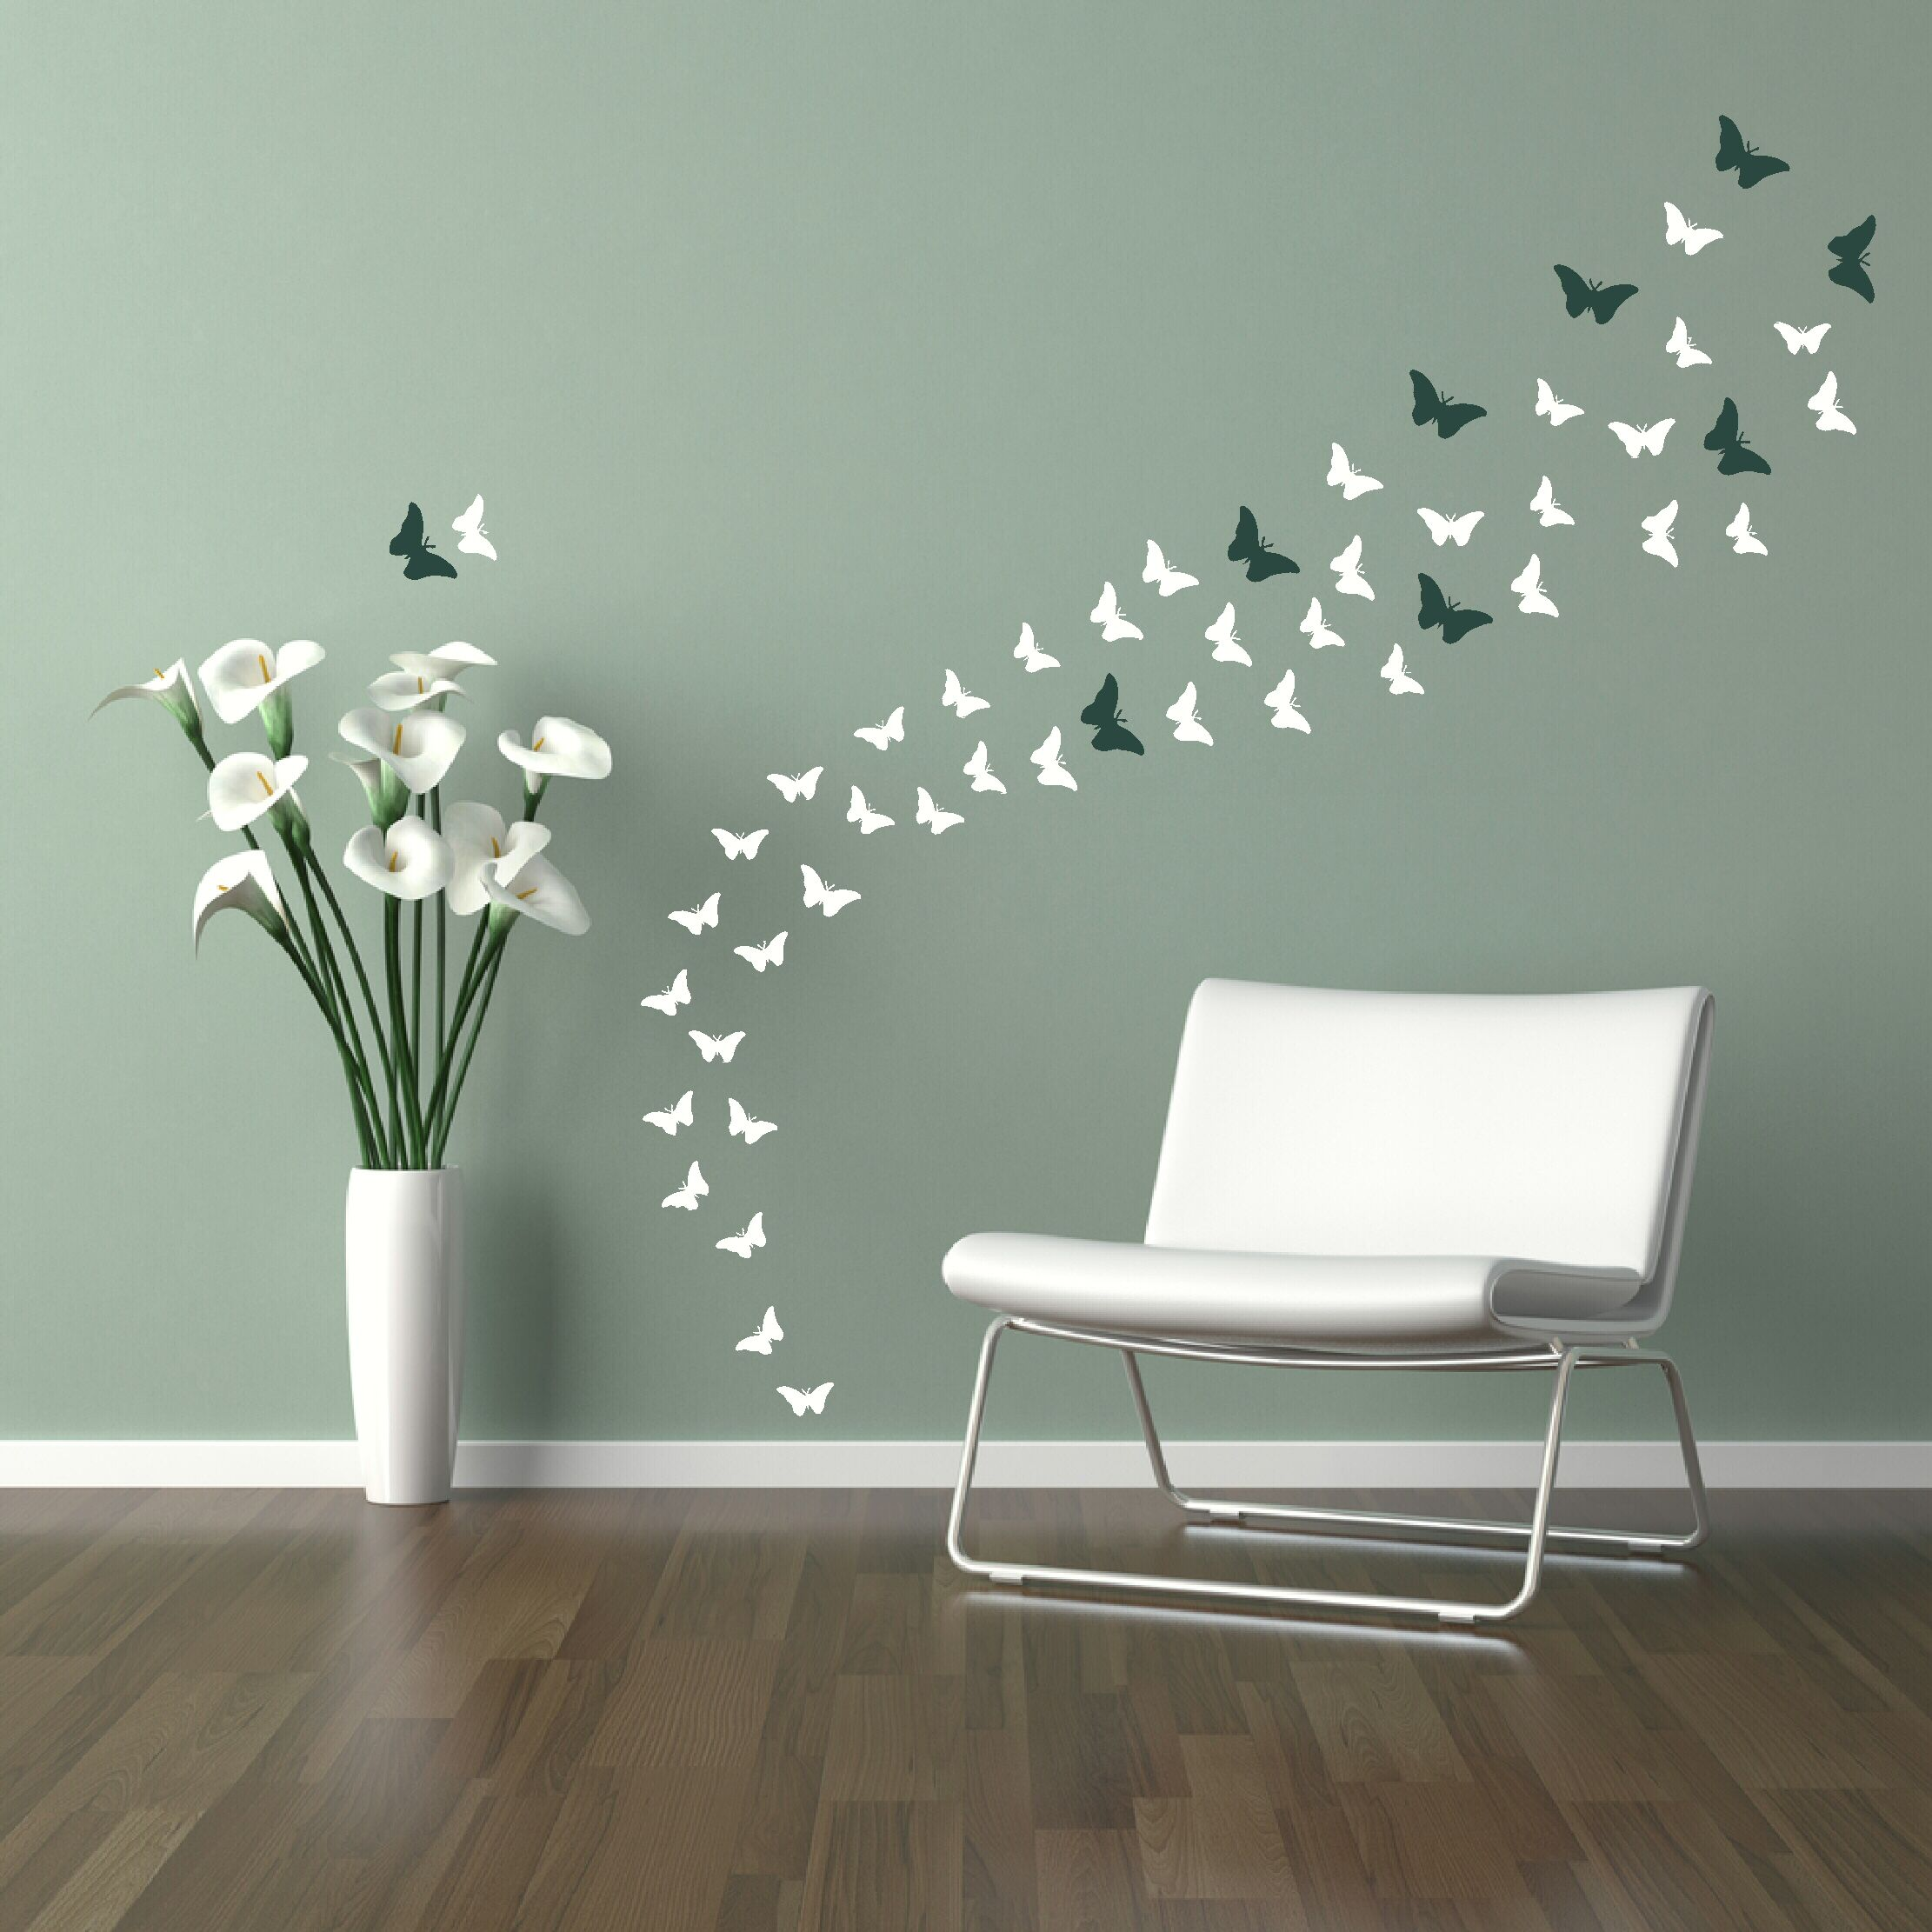 Butterflies Wall Decal Wall Stickers Home Decor Butterfly Wall Decor Interior Wall Design